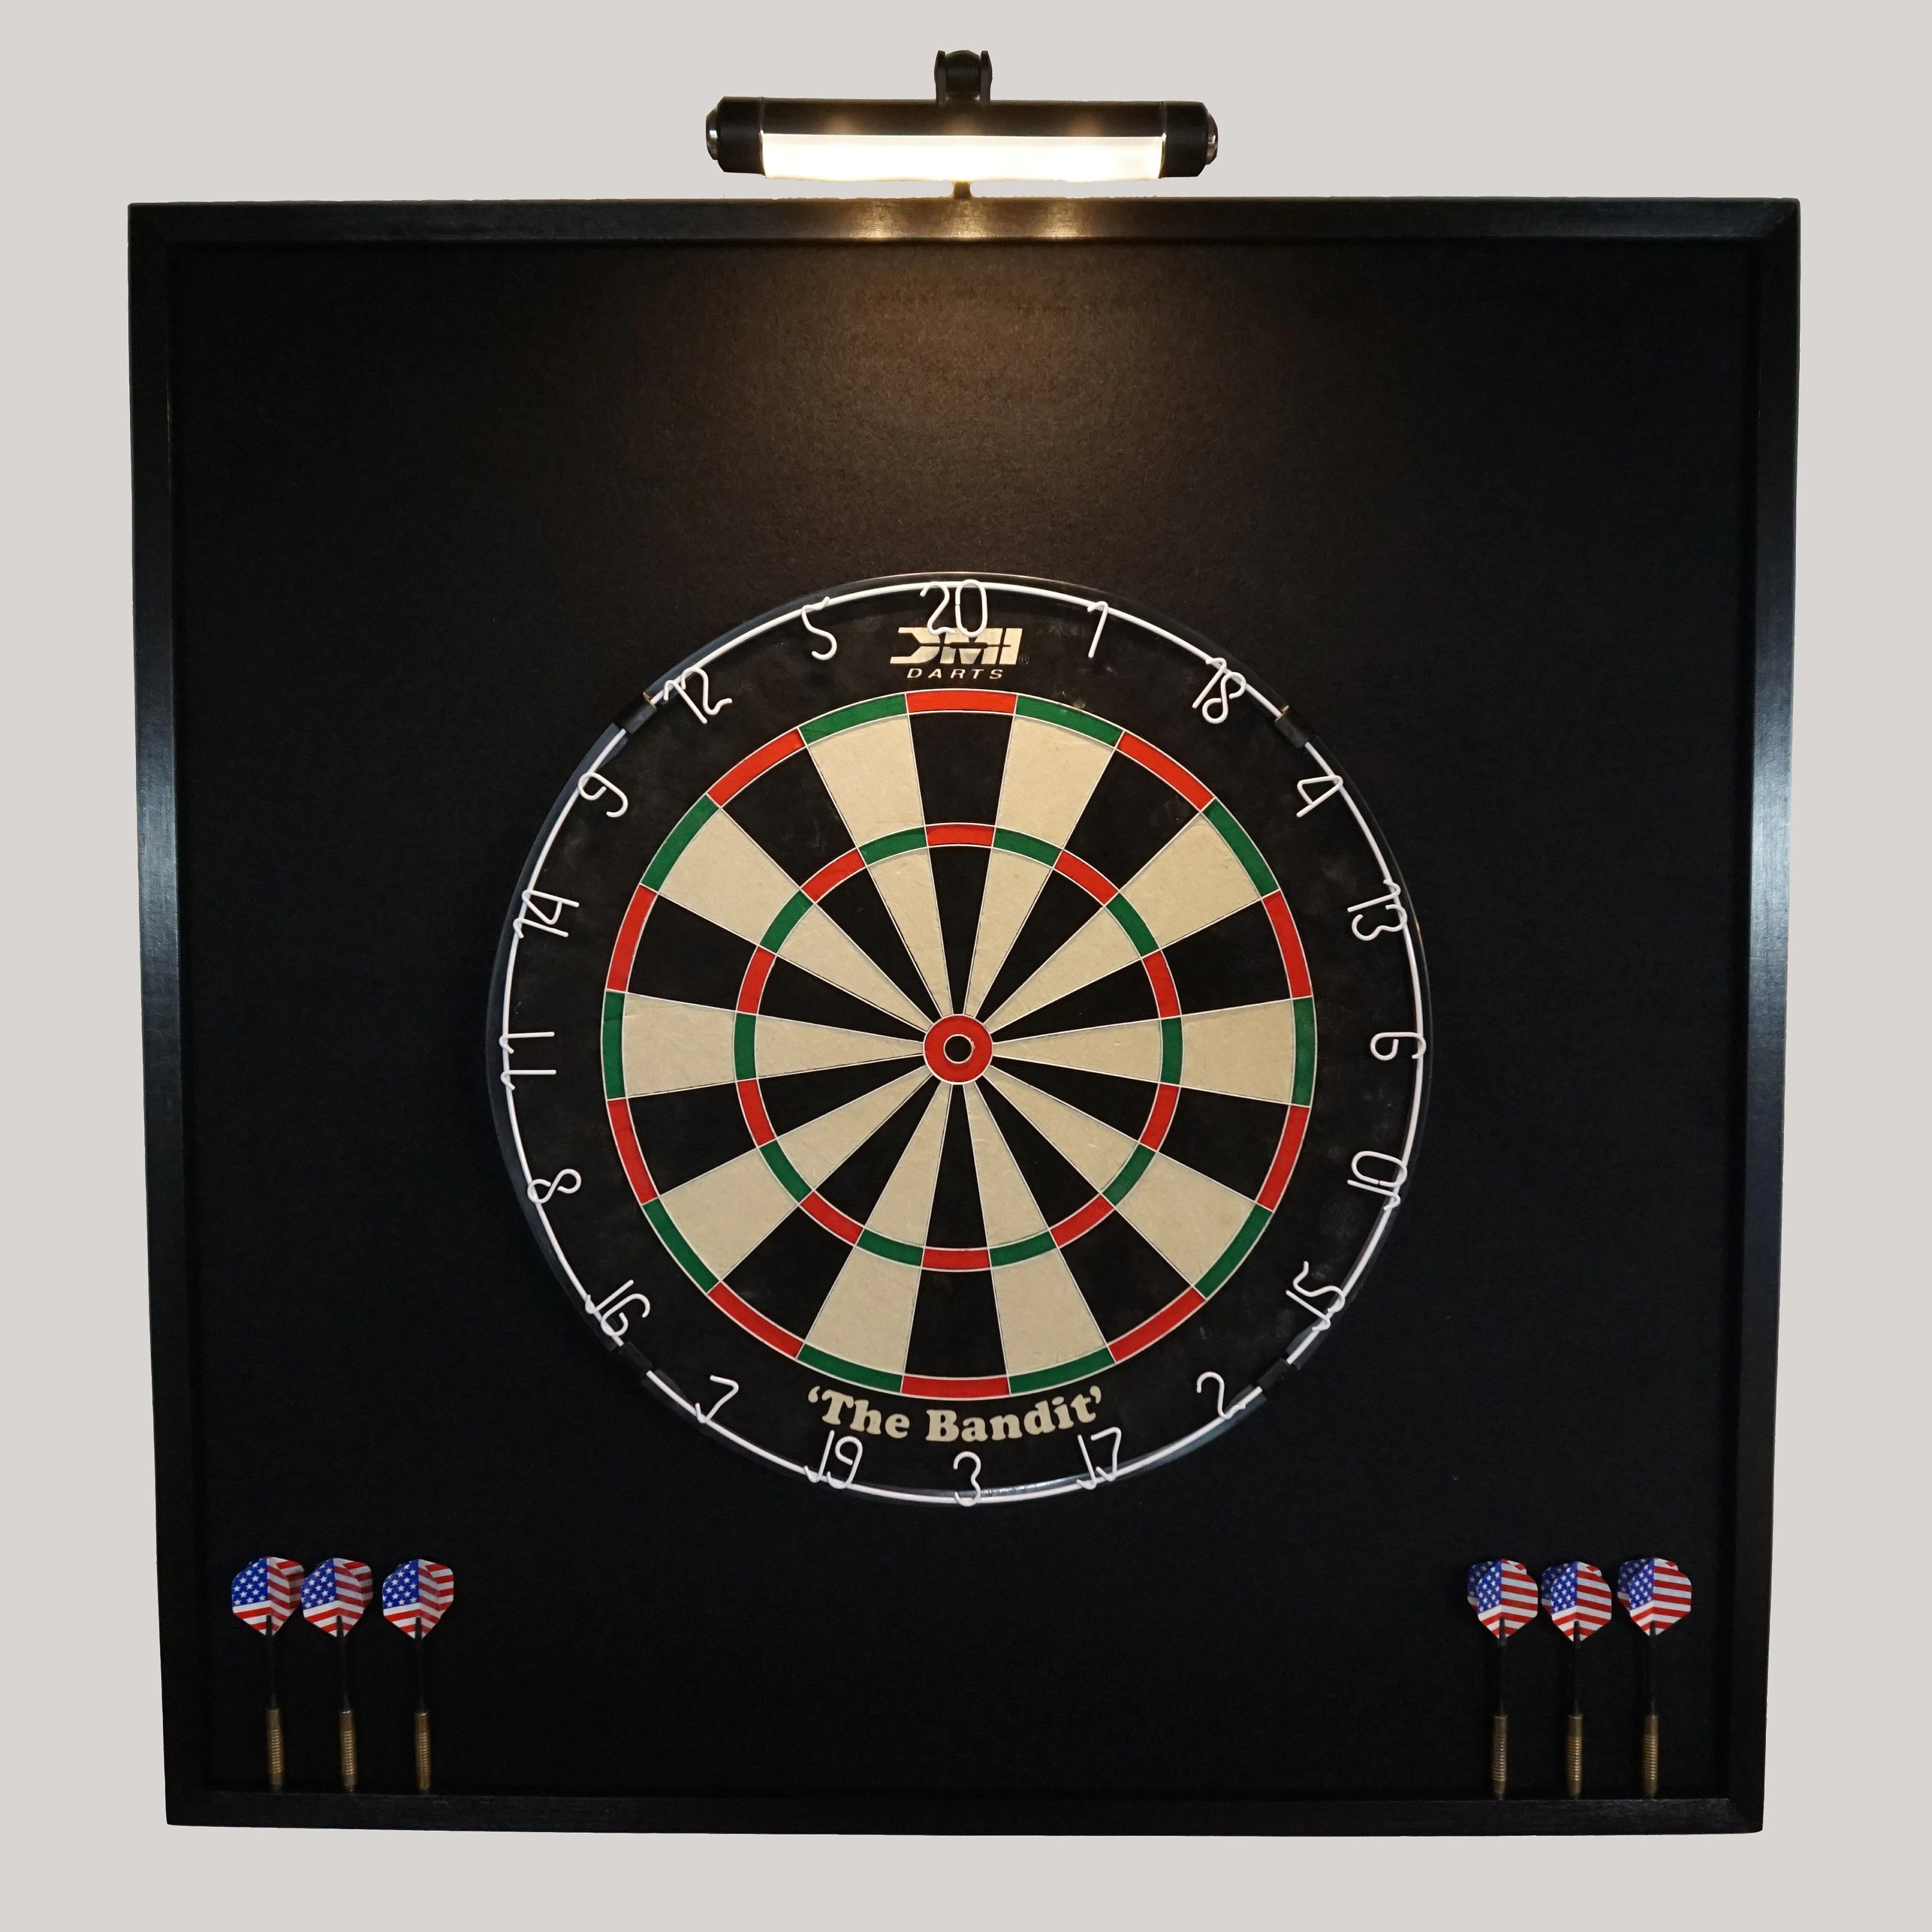 Schrankrückwand Material Custom Led Lighted Dartboard Cabinets Dart Von Jaysprojects